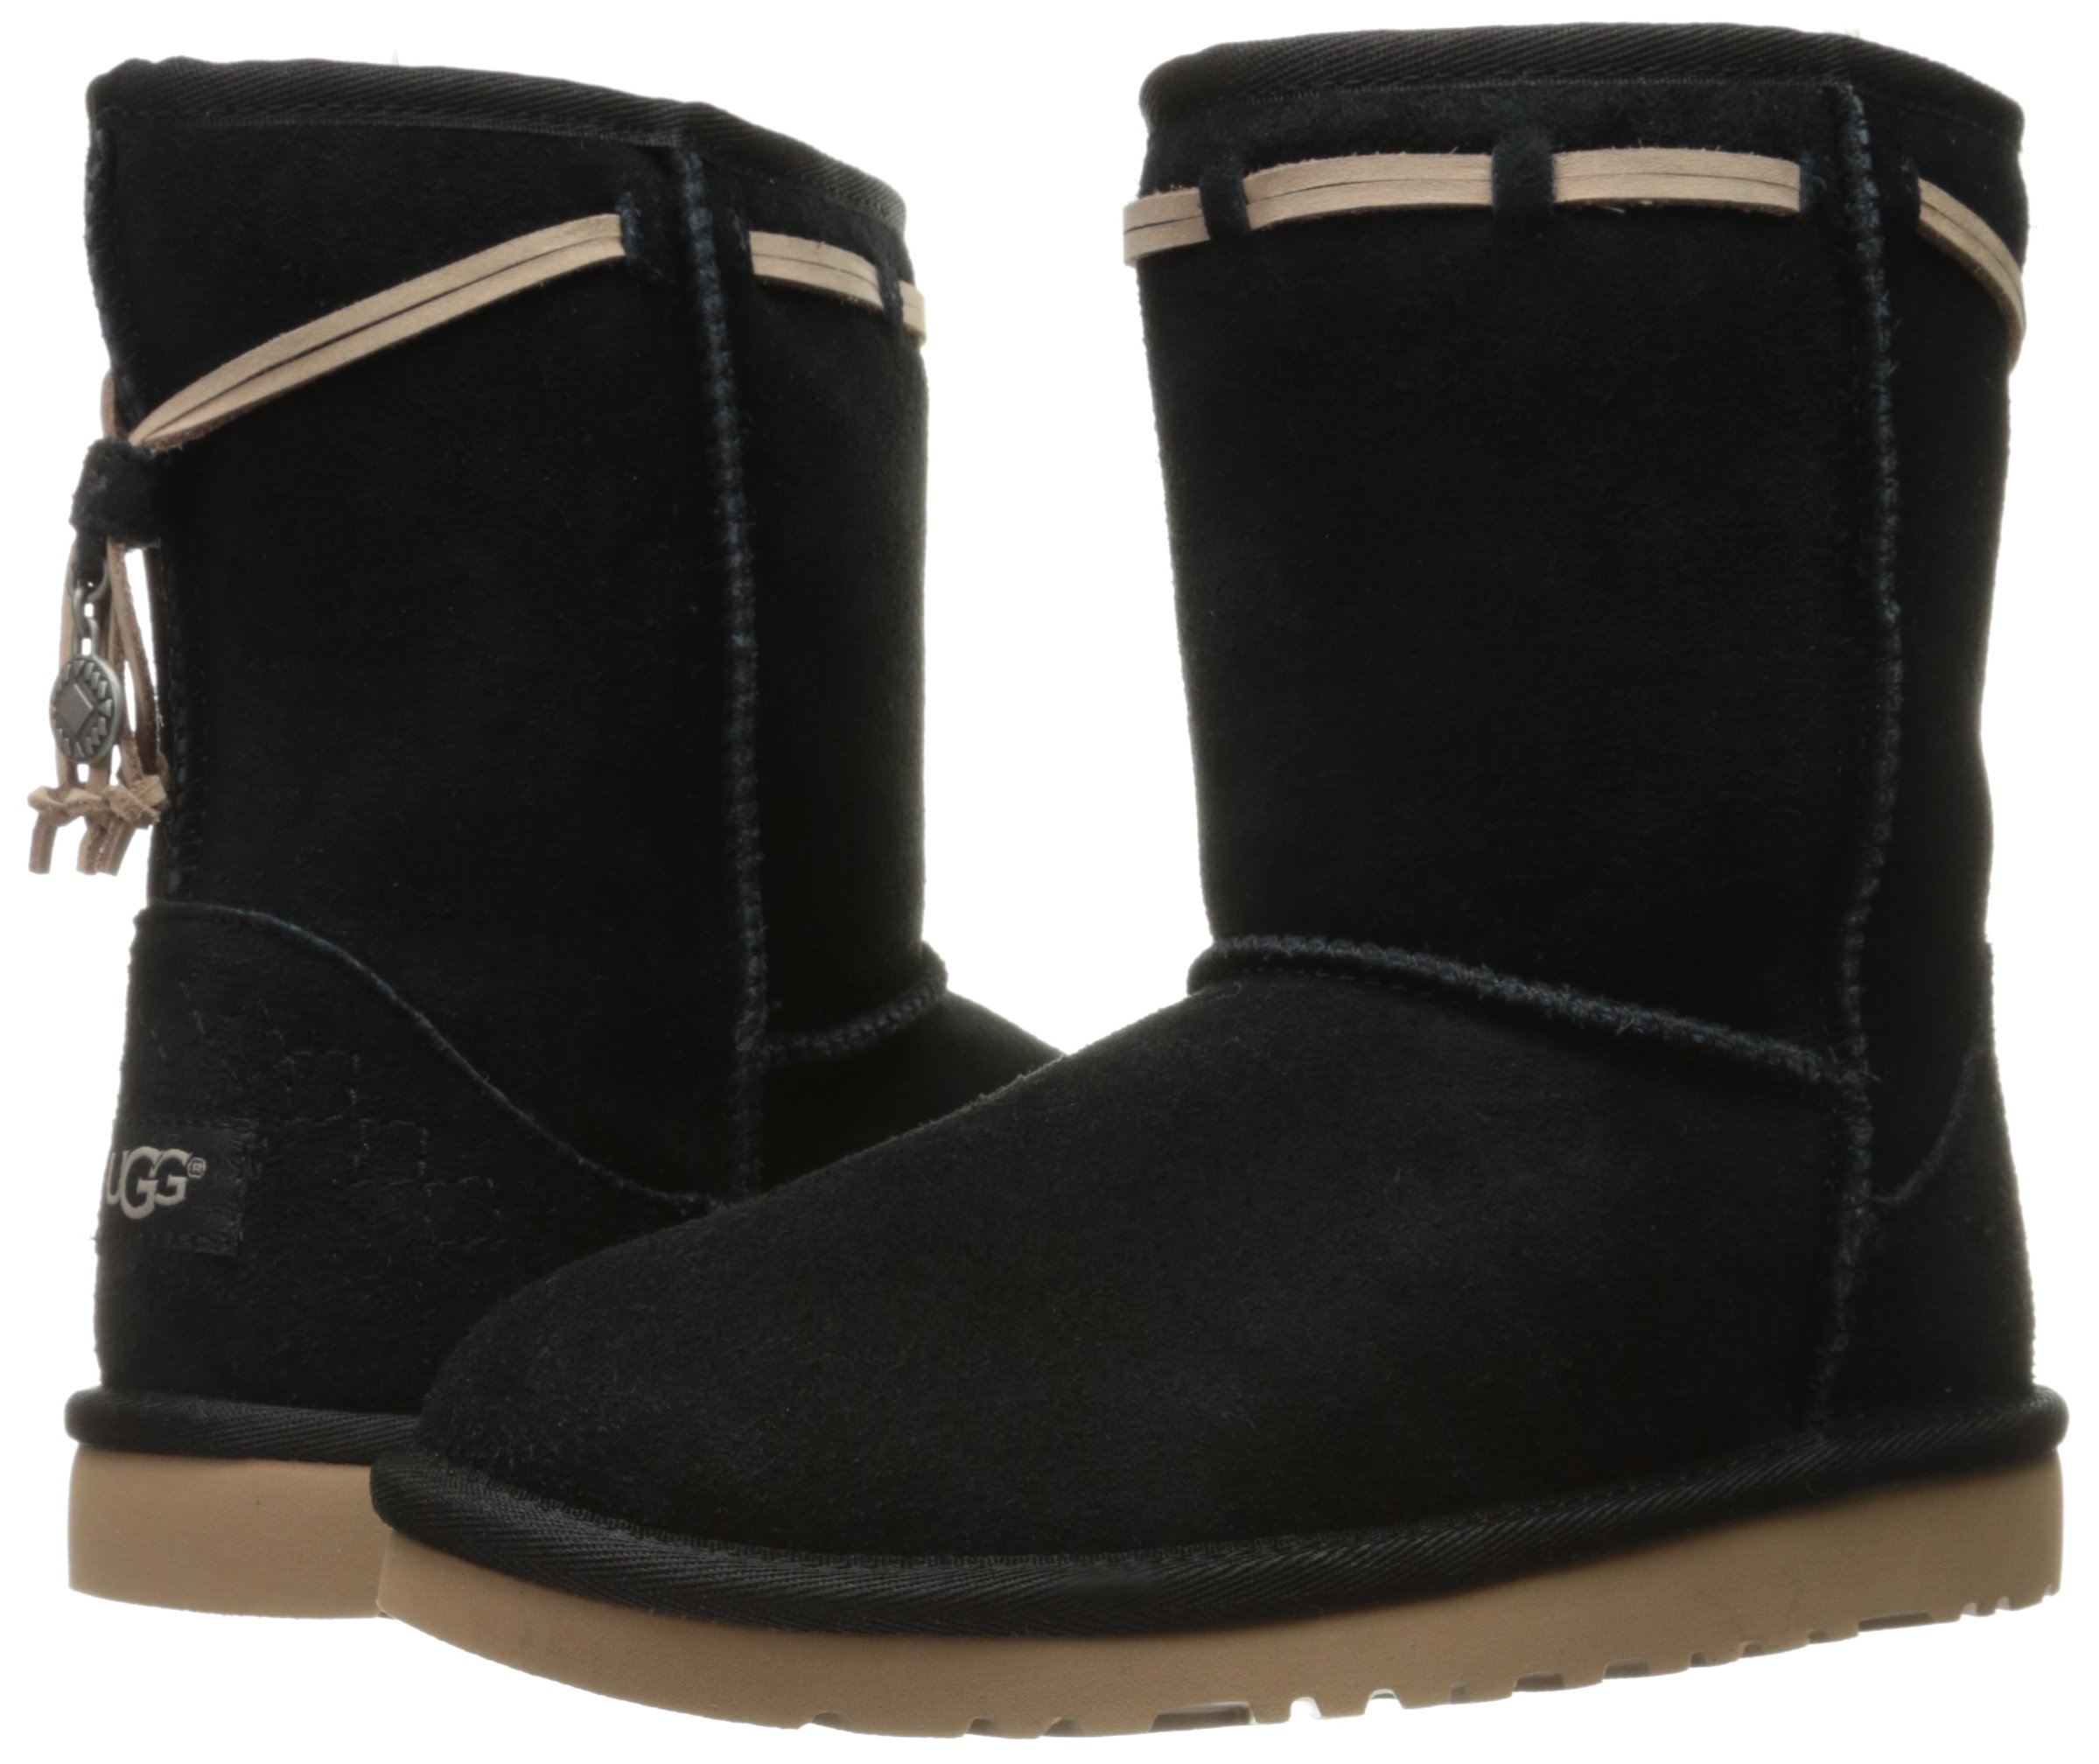 UGG Kids' K Classic Short Carranza Pull-on Boot, Black, 2 M US Little Kid by UGG (Image #6)